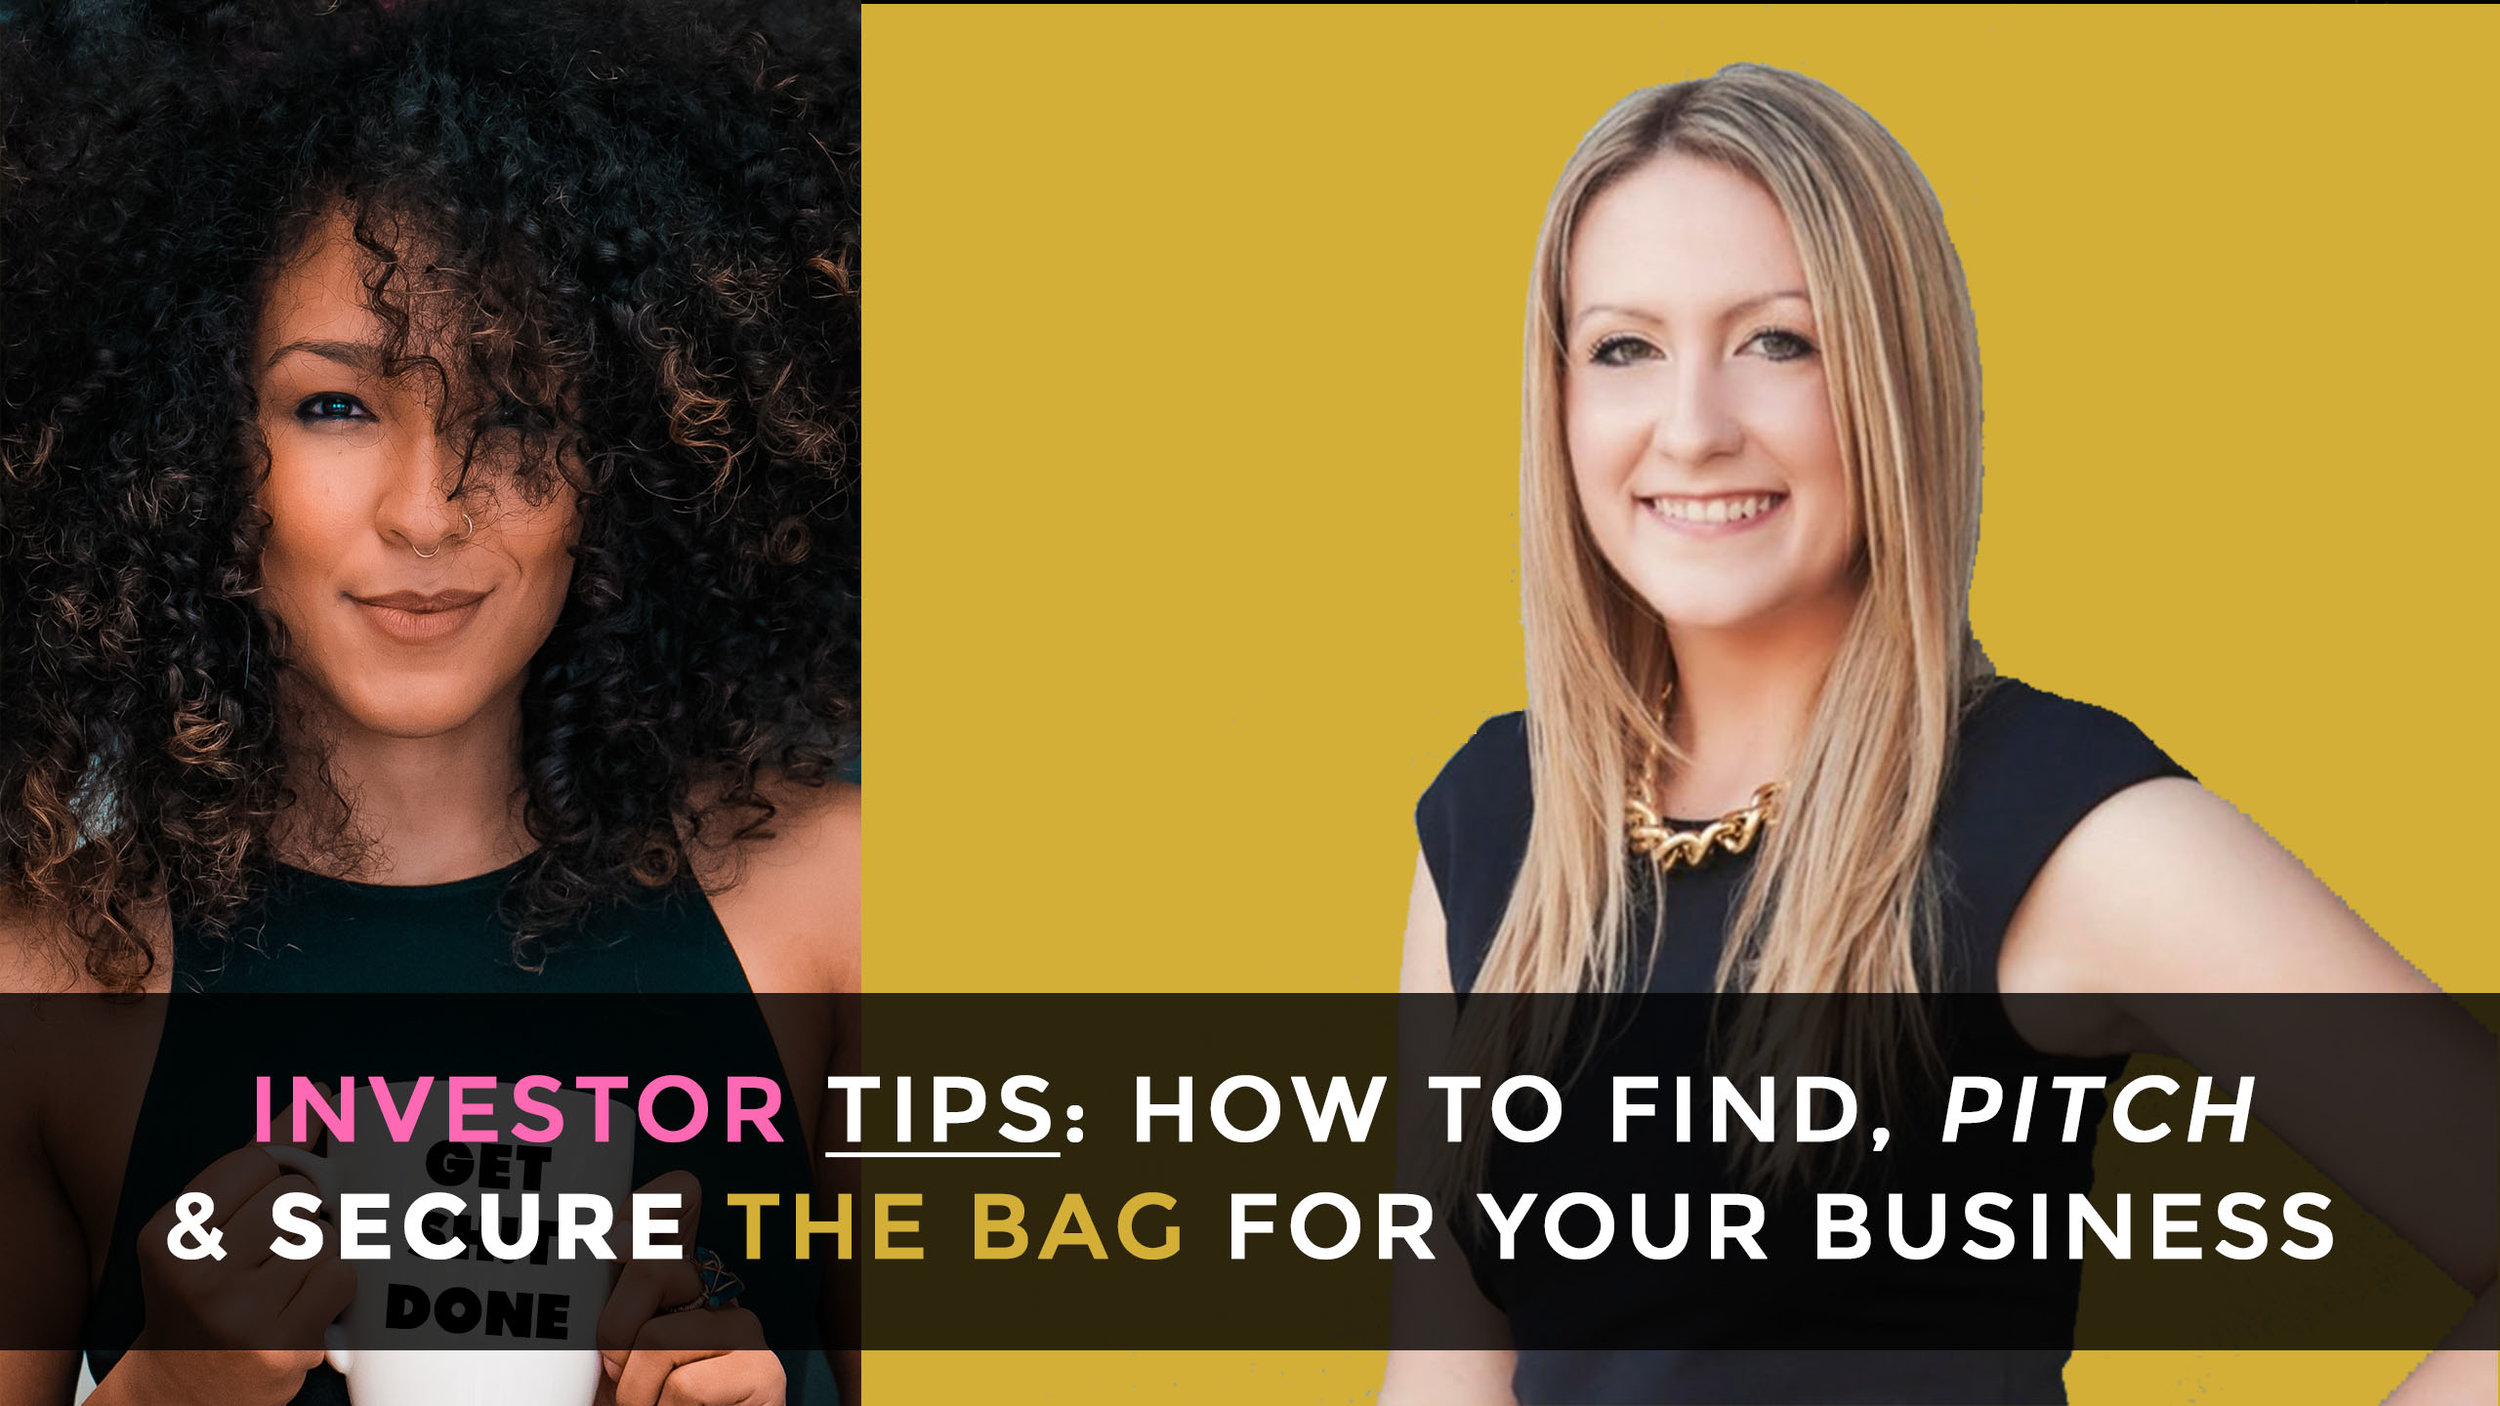 Finding investors for your biz is kind of like dating for marriage. You're courting one another, figuring out your compatibility, and ultimately coming to the conclusion on whether or not to go steady. Learn how to pitch & secure $ from investors with Anna Palmer, serial entrepreneur who has raised $13M+ & founding partner at @ XFactor Ventures, a fund focused on funding female-founded companies.     WATCH NOW  ( Will be available in podcast format soon!)